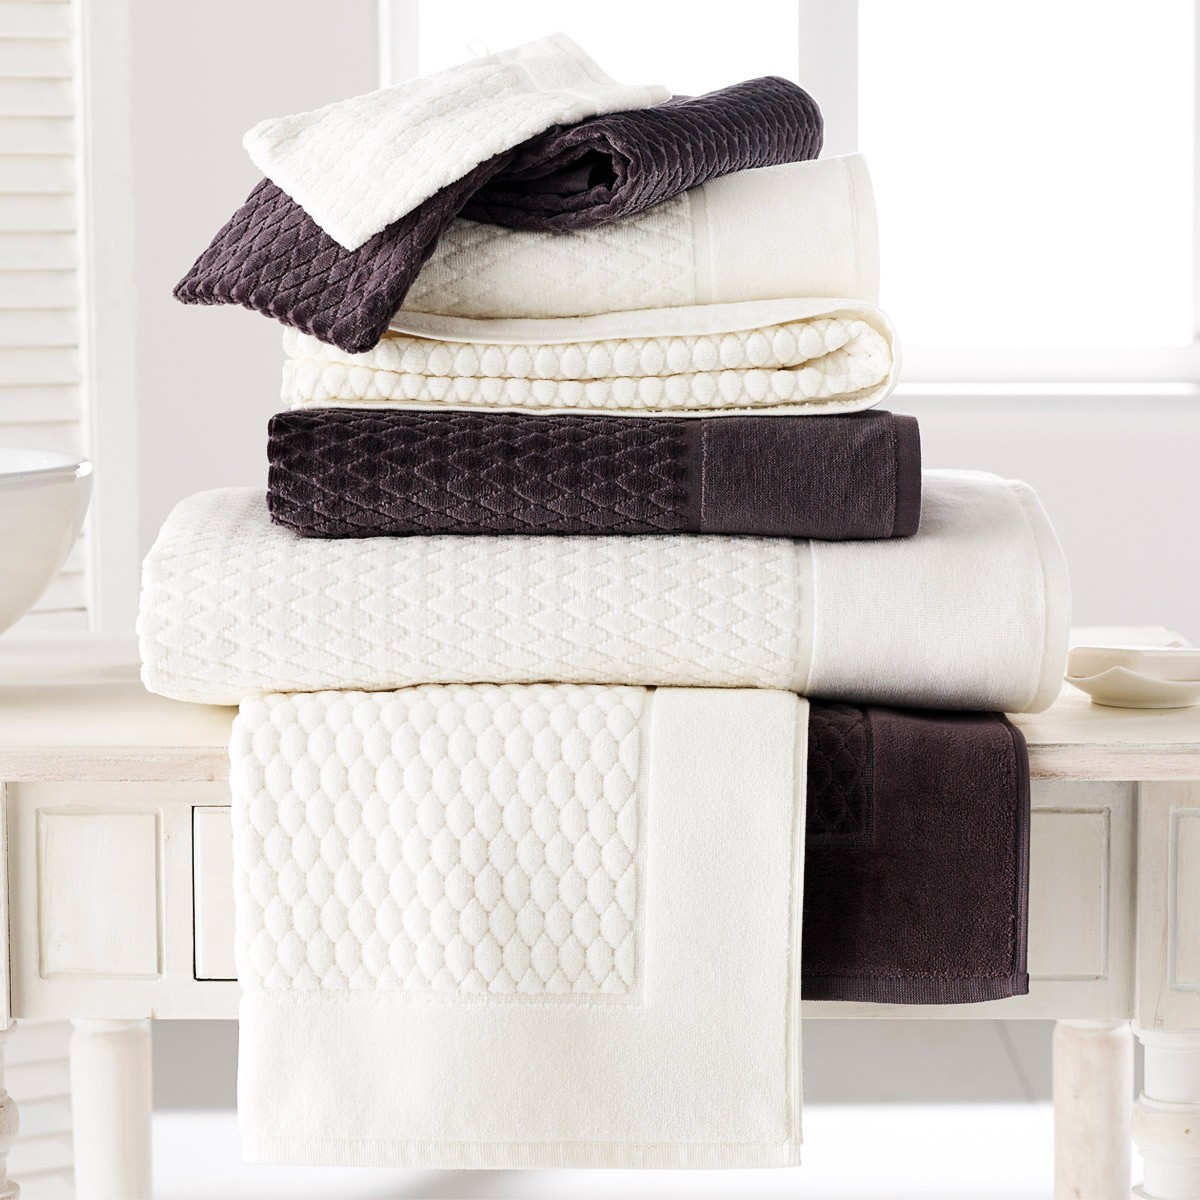 Empereur bath linen set